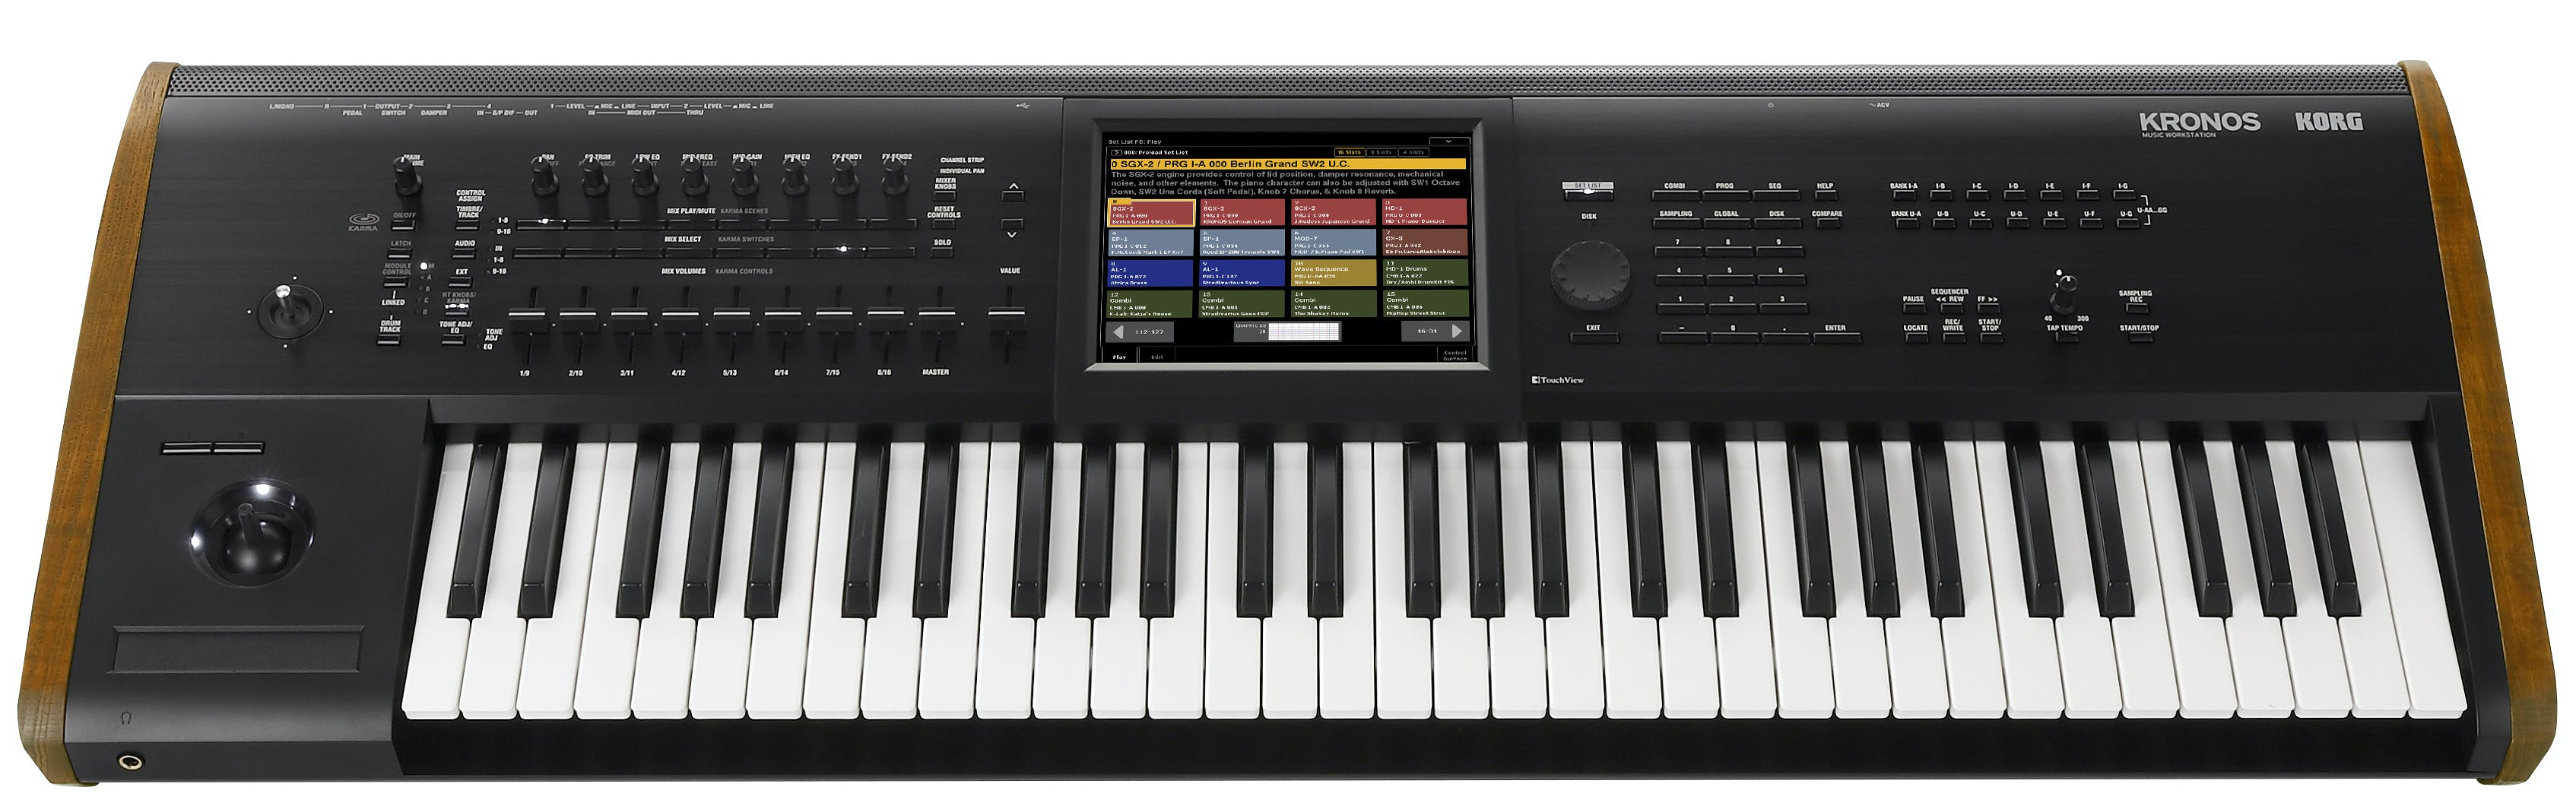 Korg Kronos 2 61 Key Synthesizer & Workstation - Andertons